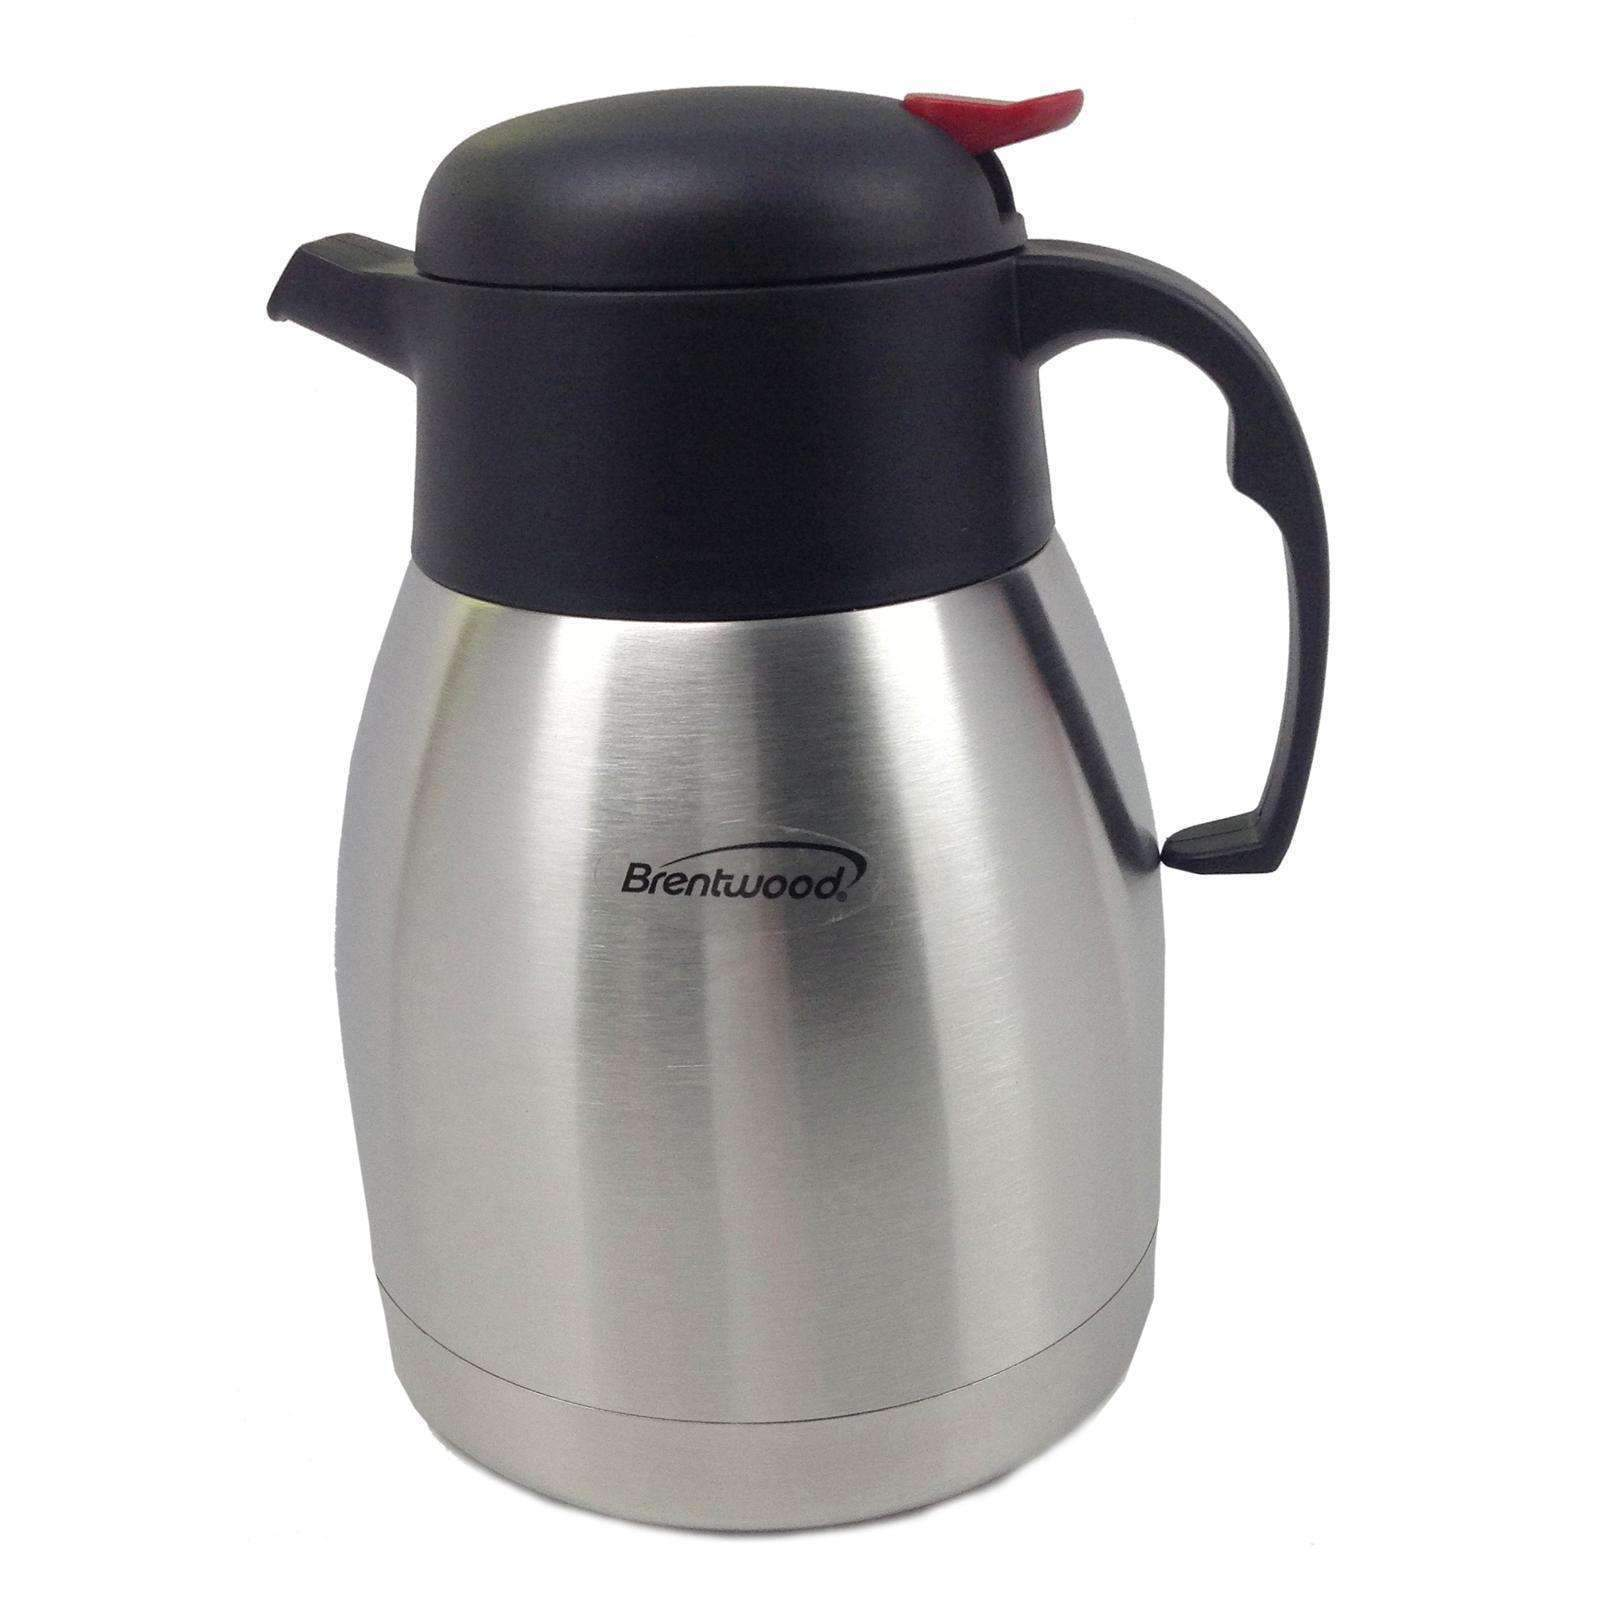 Brentwood Kitchen Gadgets Brentwood 68 oz. Stainless Steel Coffee Thermos